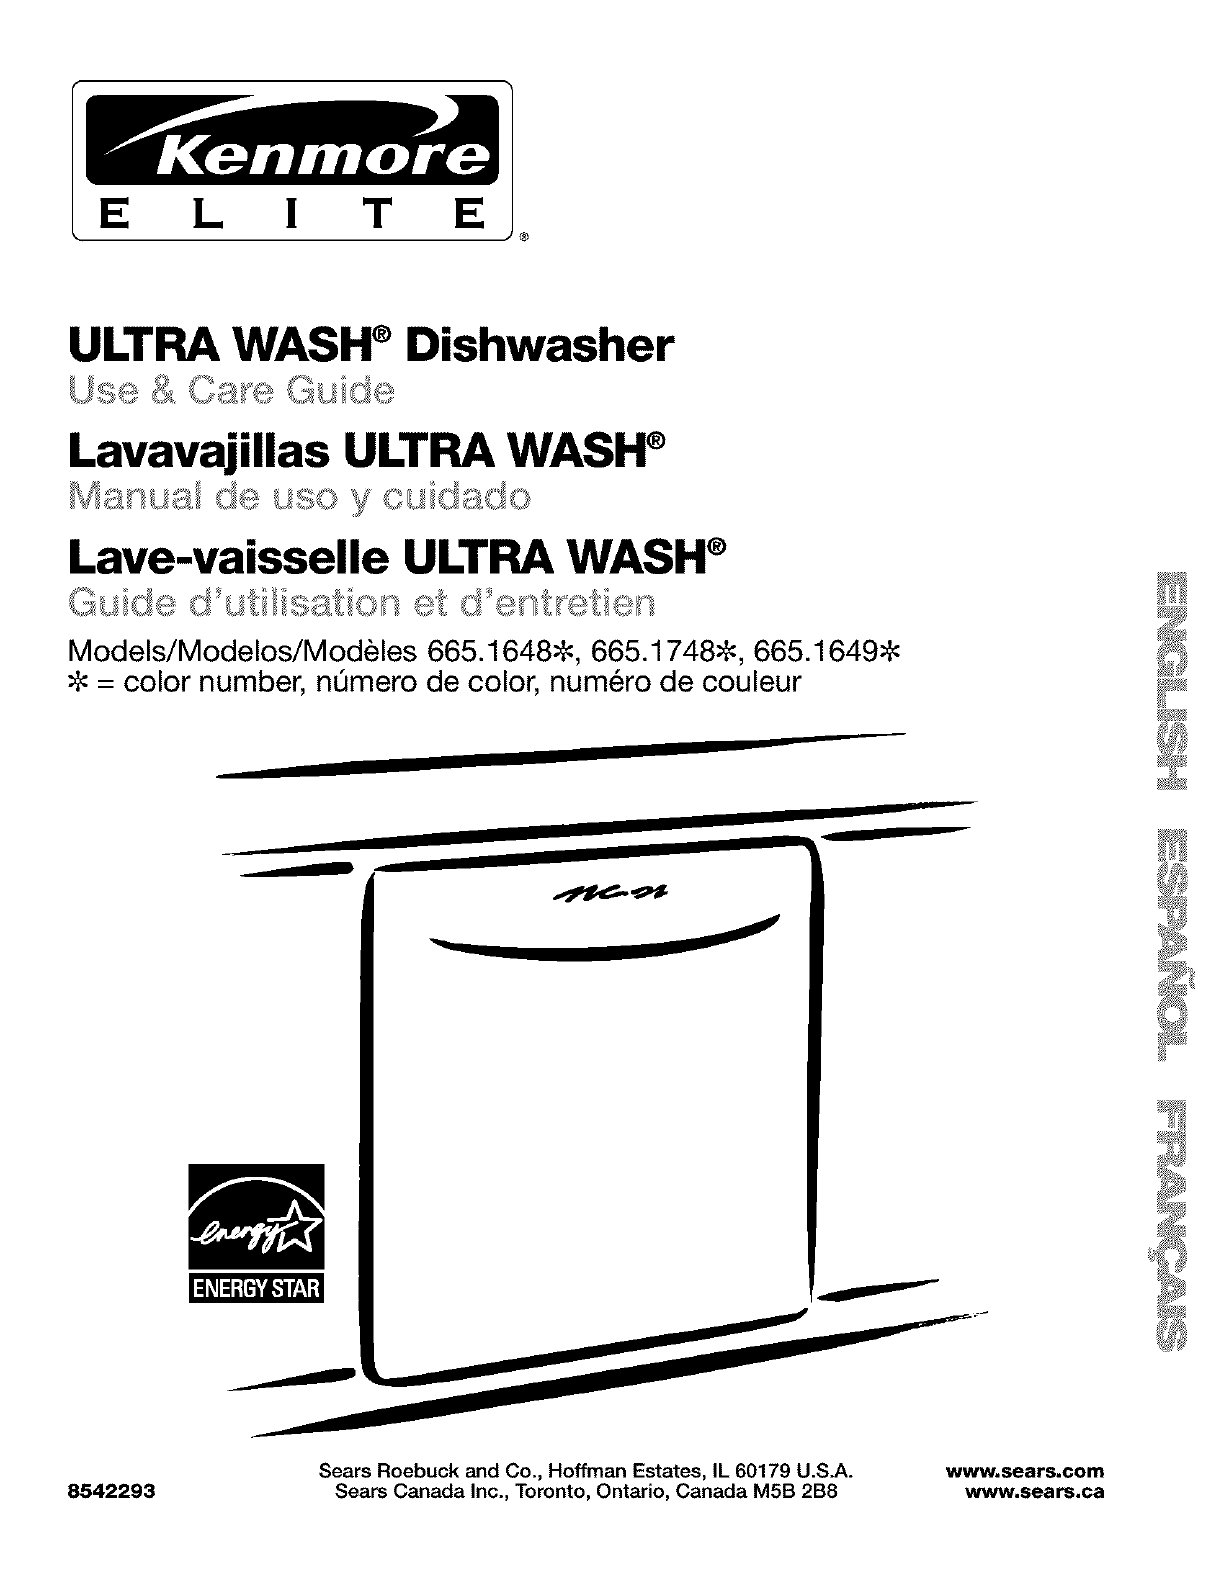 E L ! T E. ULTRA WASH ®Dishwasher